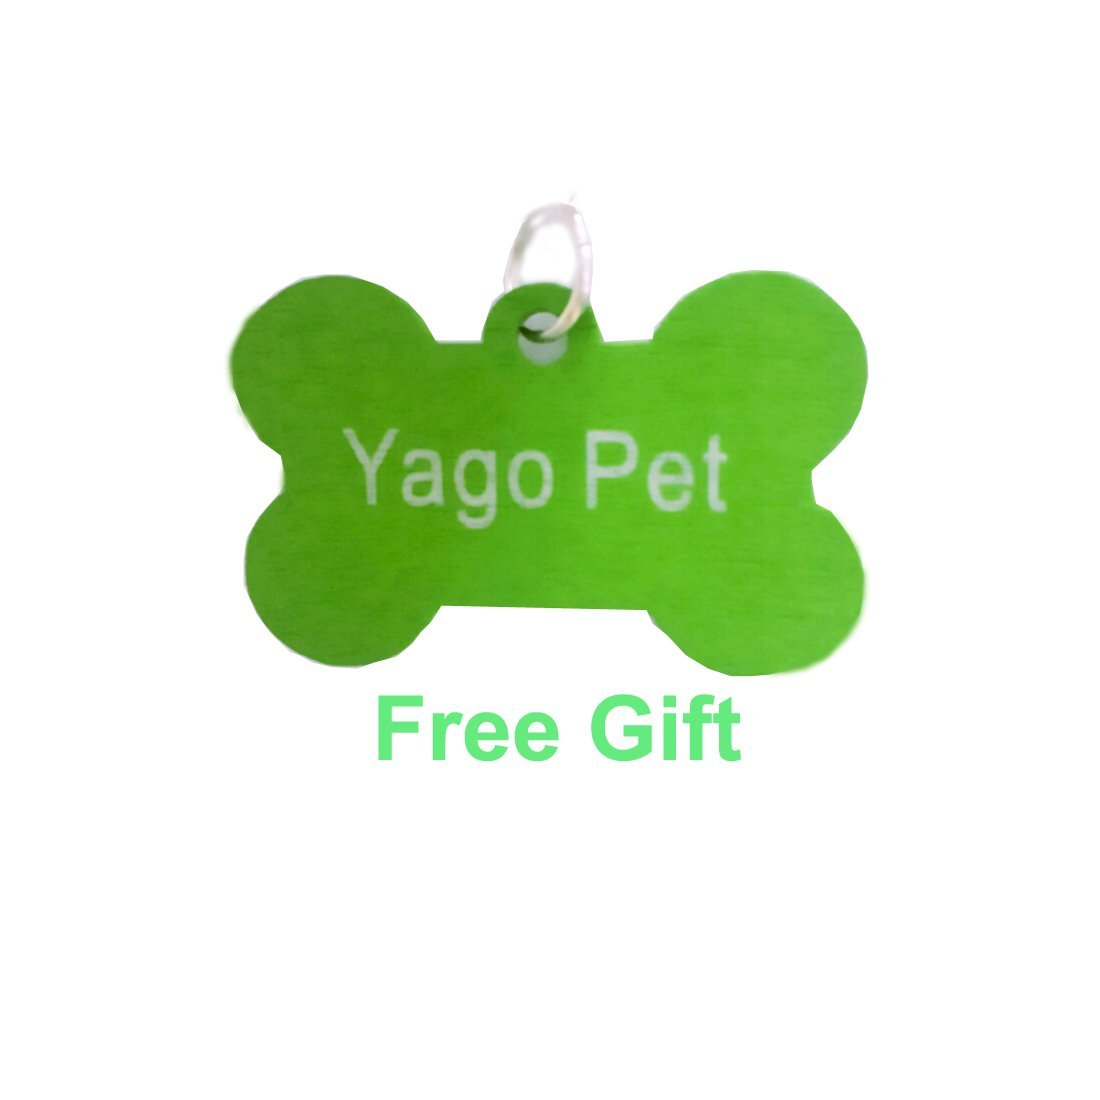 yagopet 40pcs/20pairs Small Dog Hair Bows Autumn Dog Bows Orange Dog Hair Bows Topknot Mix Designs Small Bowknot with Rubber Bands Pet Grooming Products Dog Hair Accessories by yagopet (Image #2)